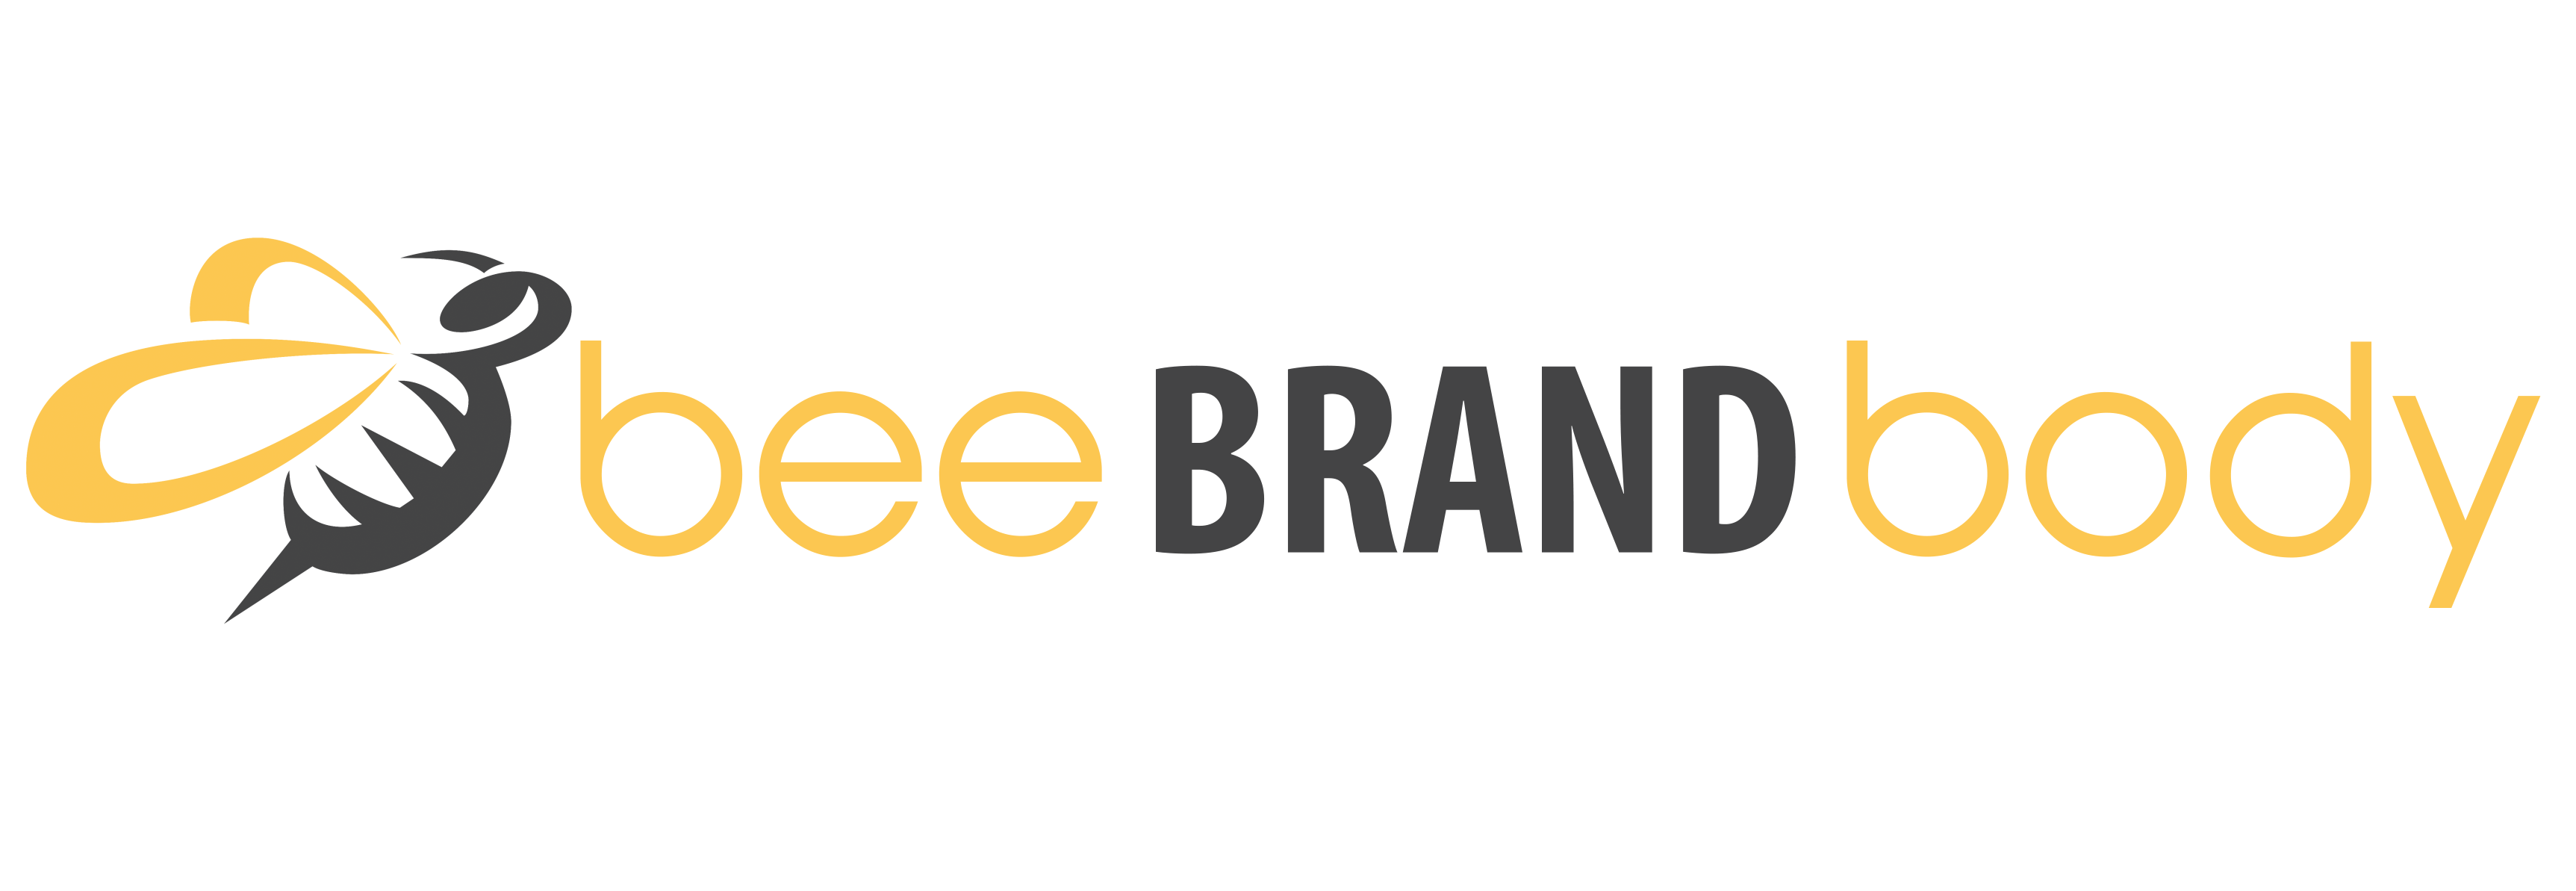 Bee Brand Body logo